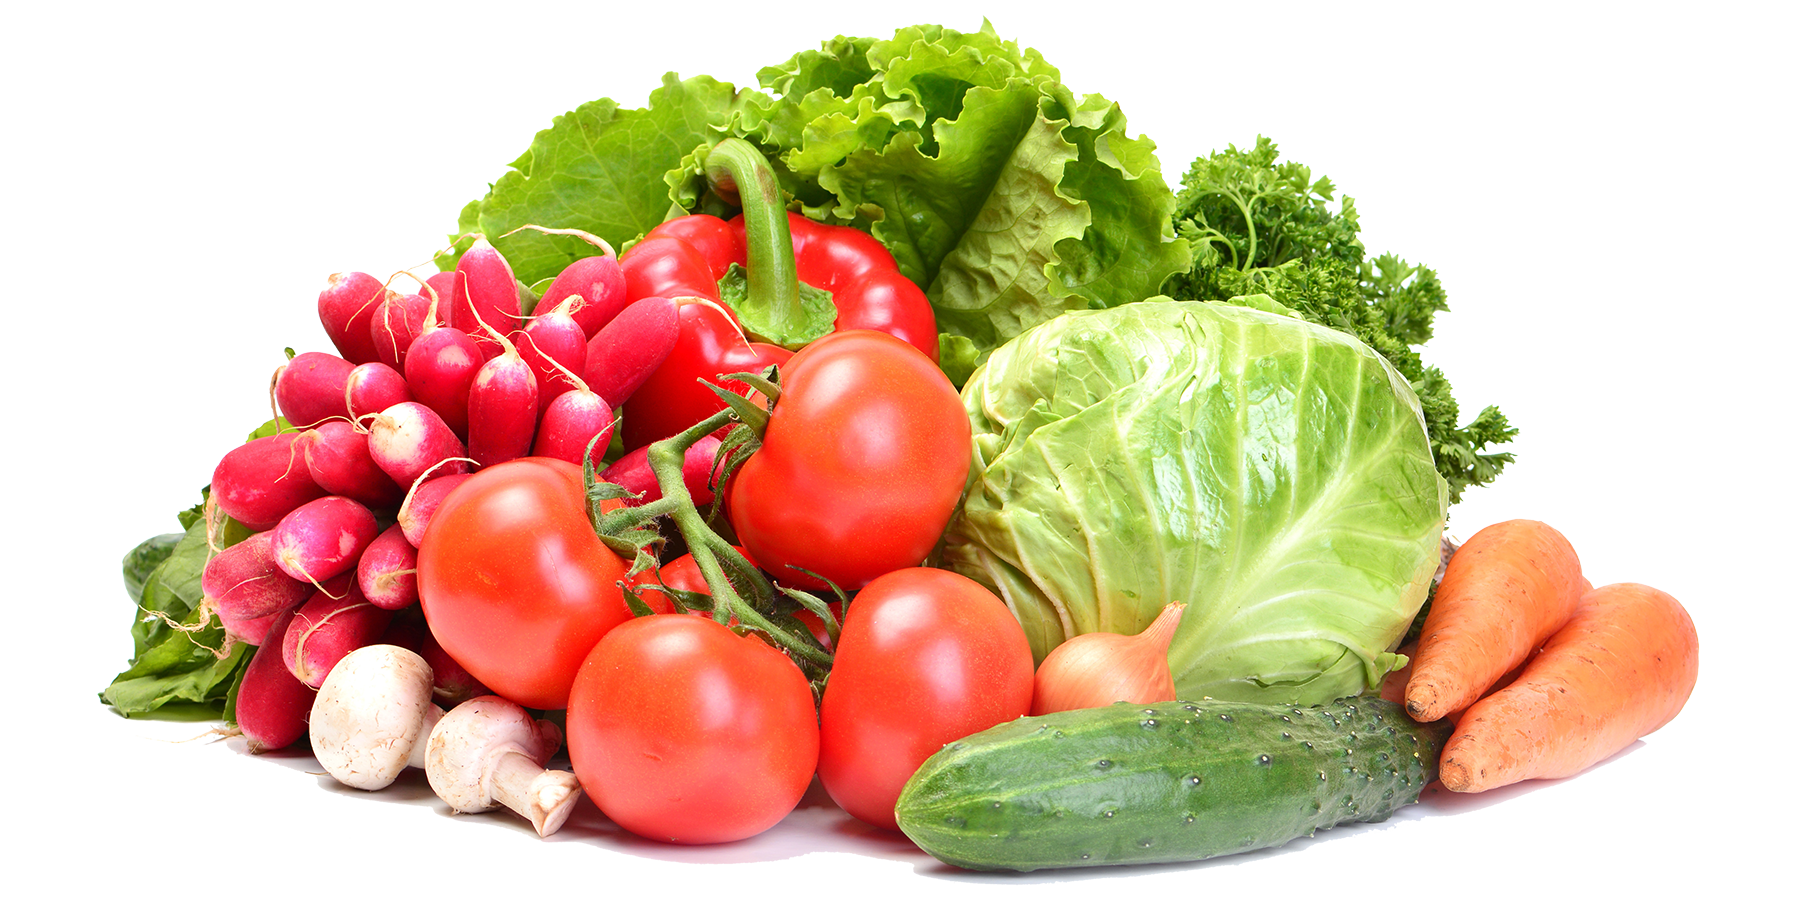 Wholesale produce from the. Fresh vegetables png clipart transparent download